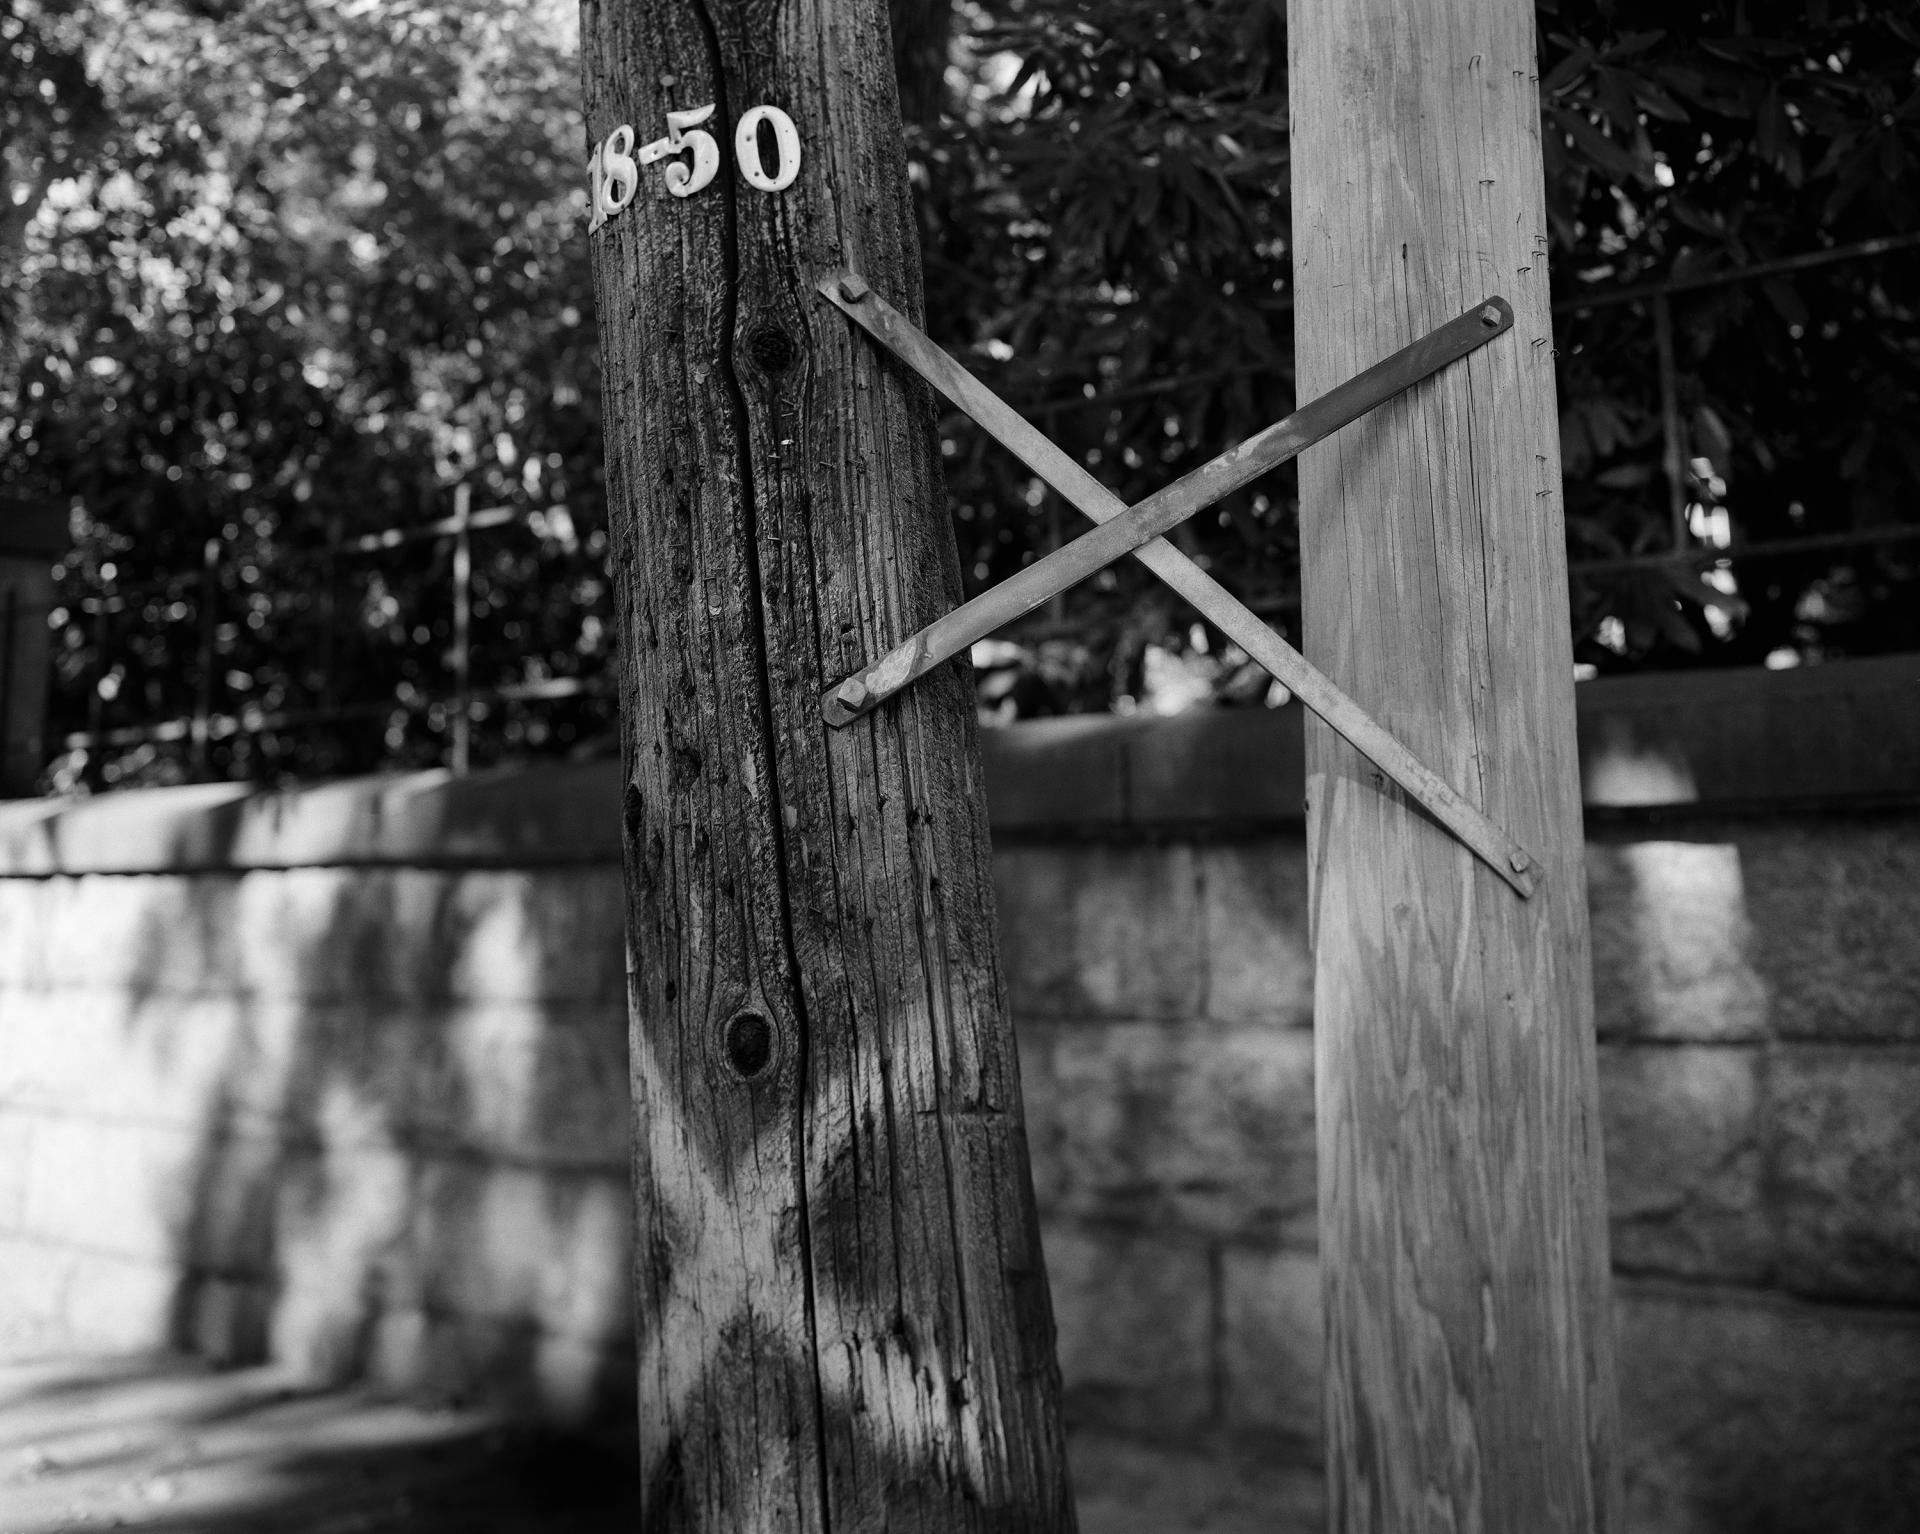 A black and white photograph of two electrical poles bound together with a metal x; one with a painted white x on the lower portion.